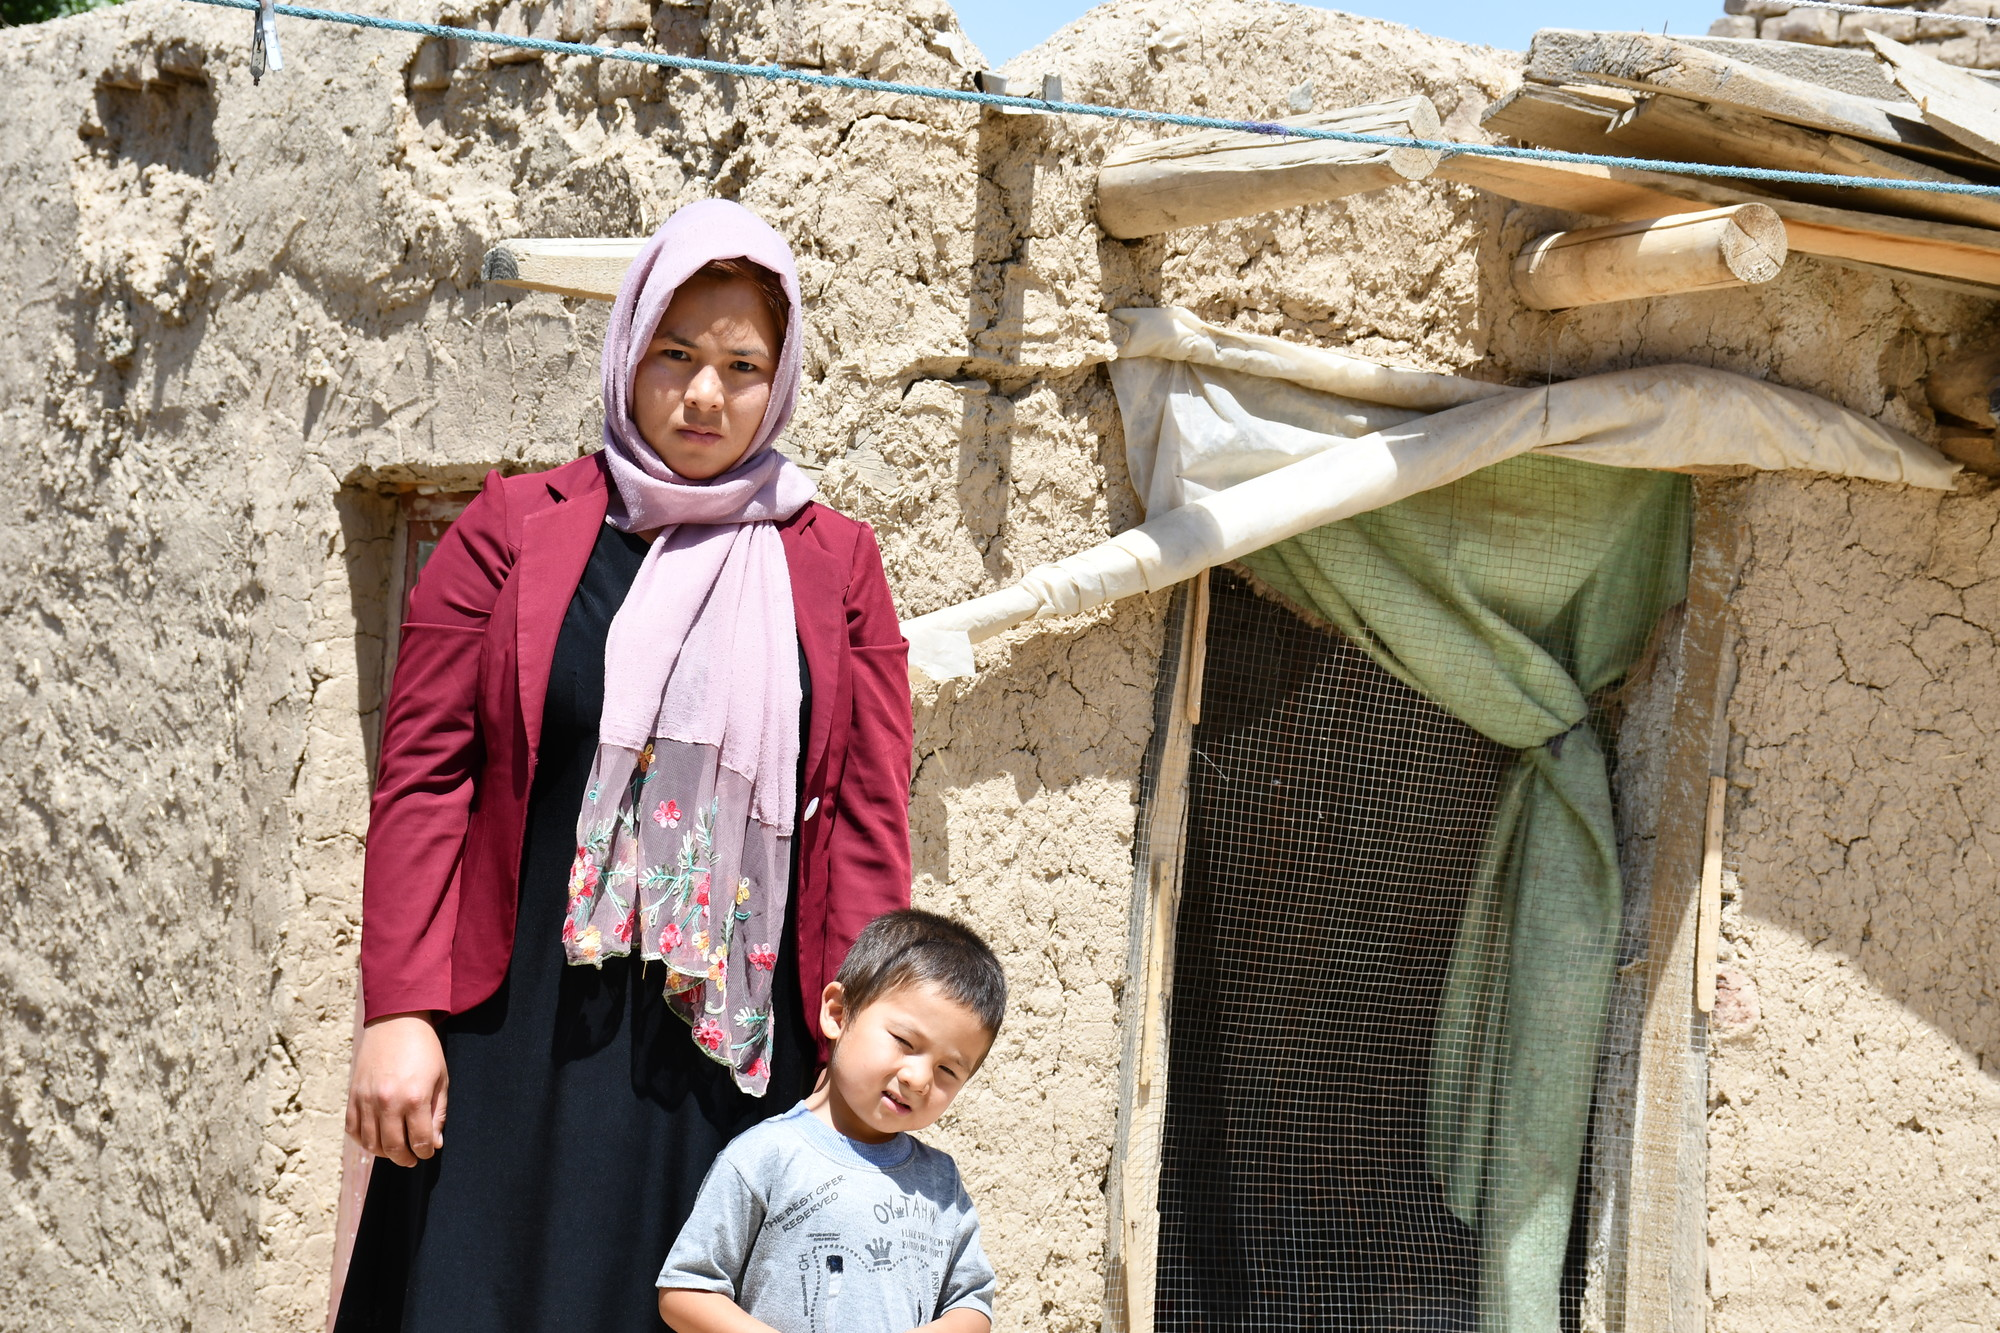 A woman and a small boy stand outside of a clay and wood home.